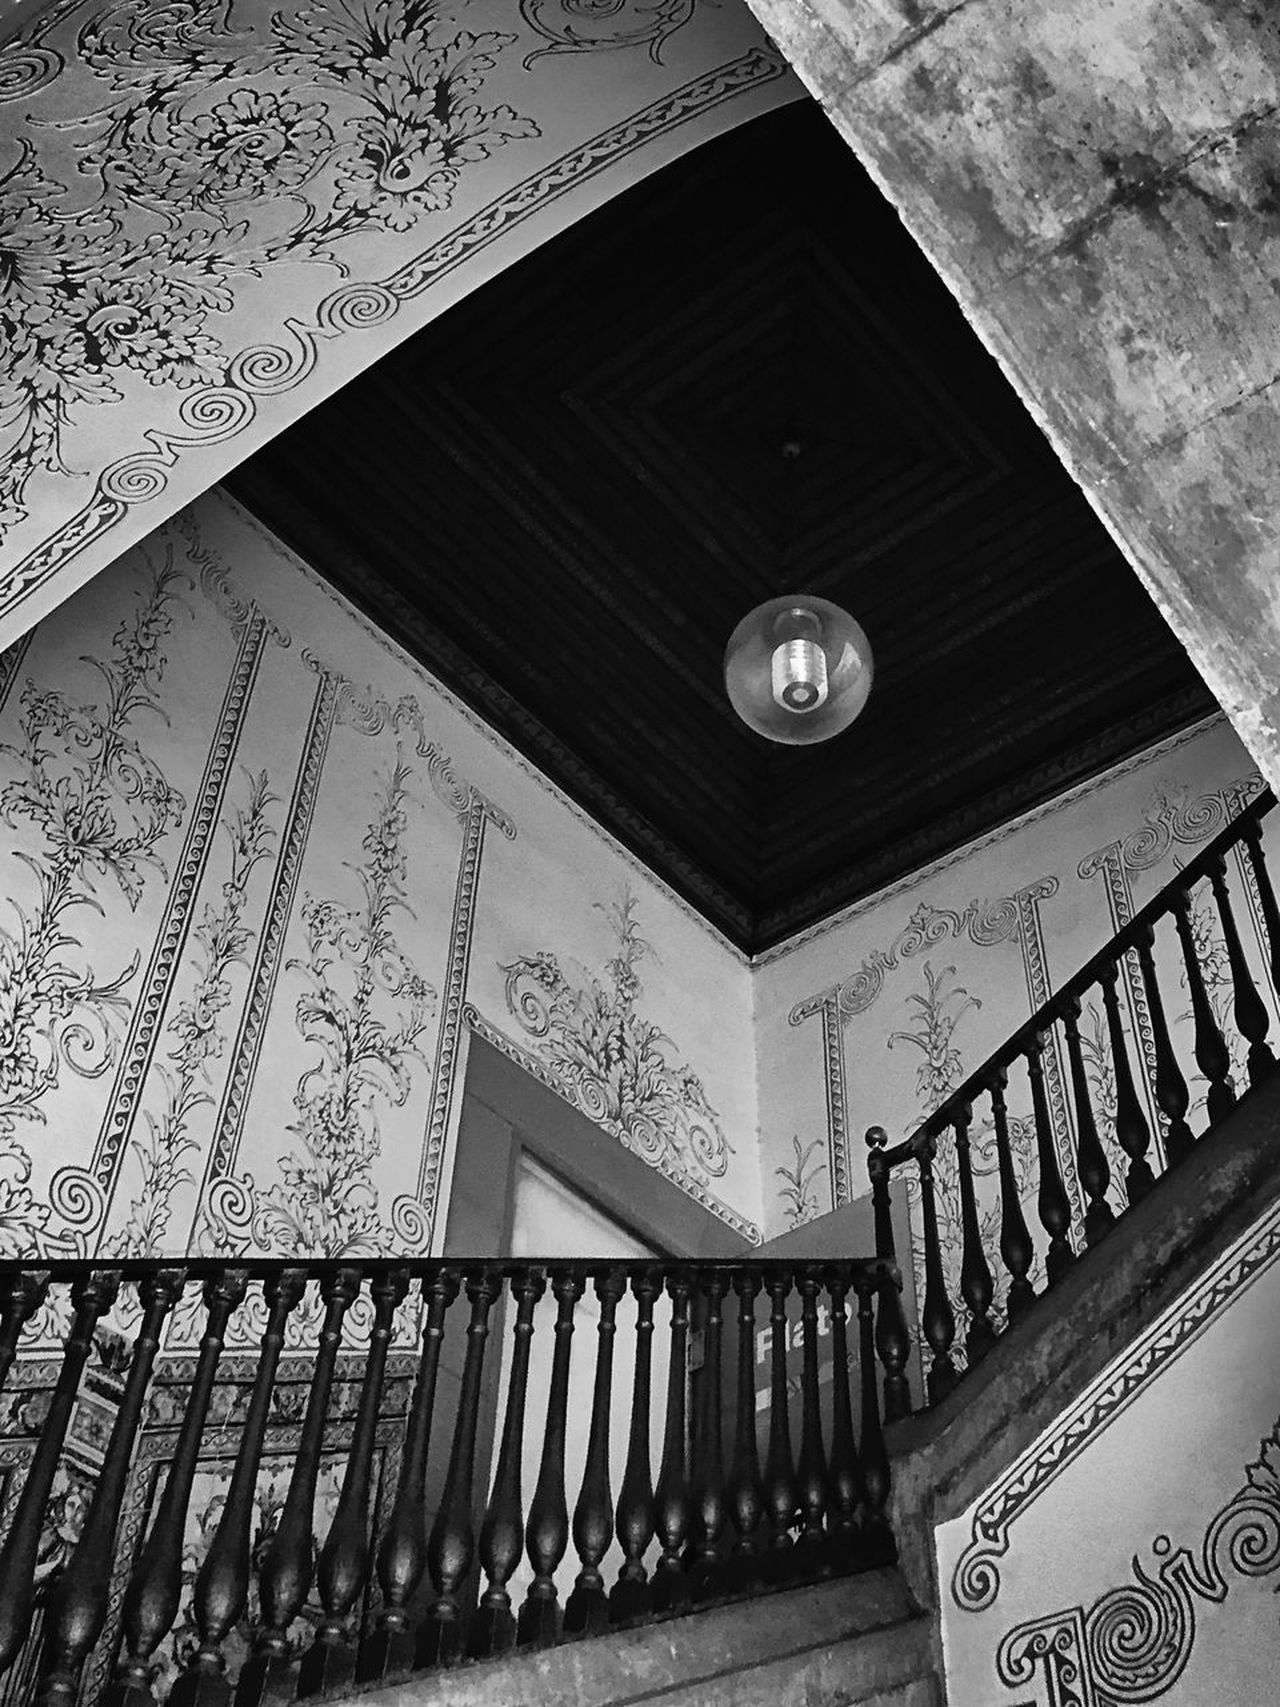 77 / 365 Architecture Architecture Blackandwhite Bnw_rose Built Structure Ceiling Design Frames Geometric Shape Geometry Indoors  Lightbulb Low Angle View Noir_shots Noiretblanc Stairs Tonality Transfer_visions_bnw